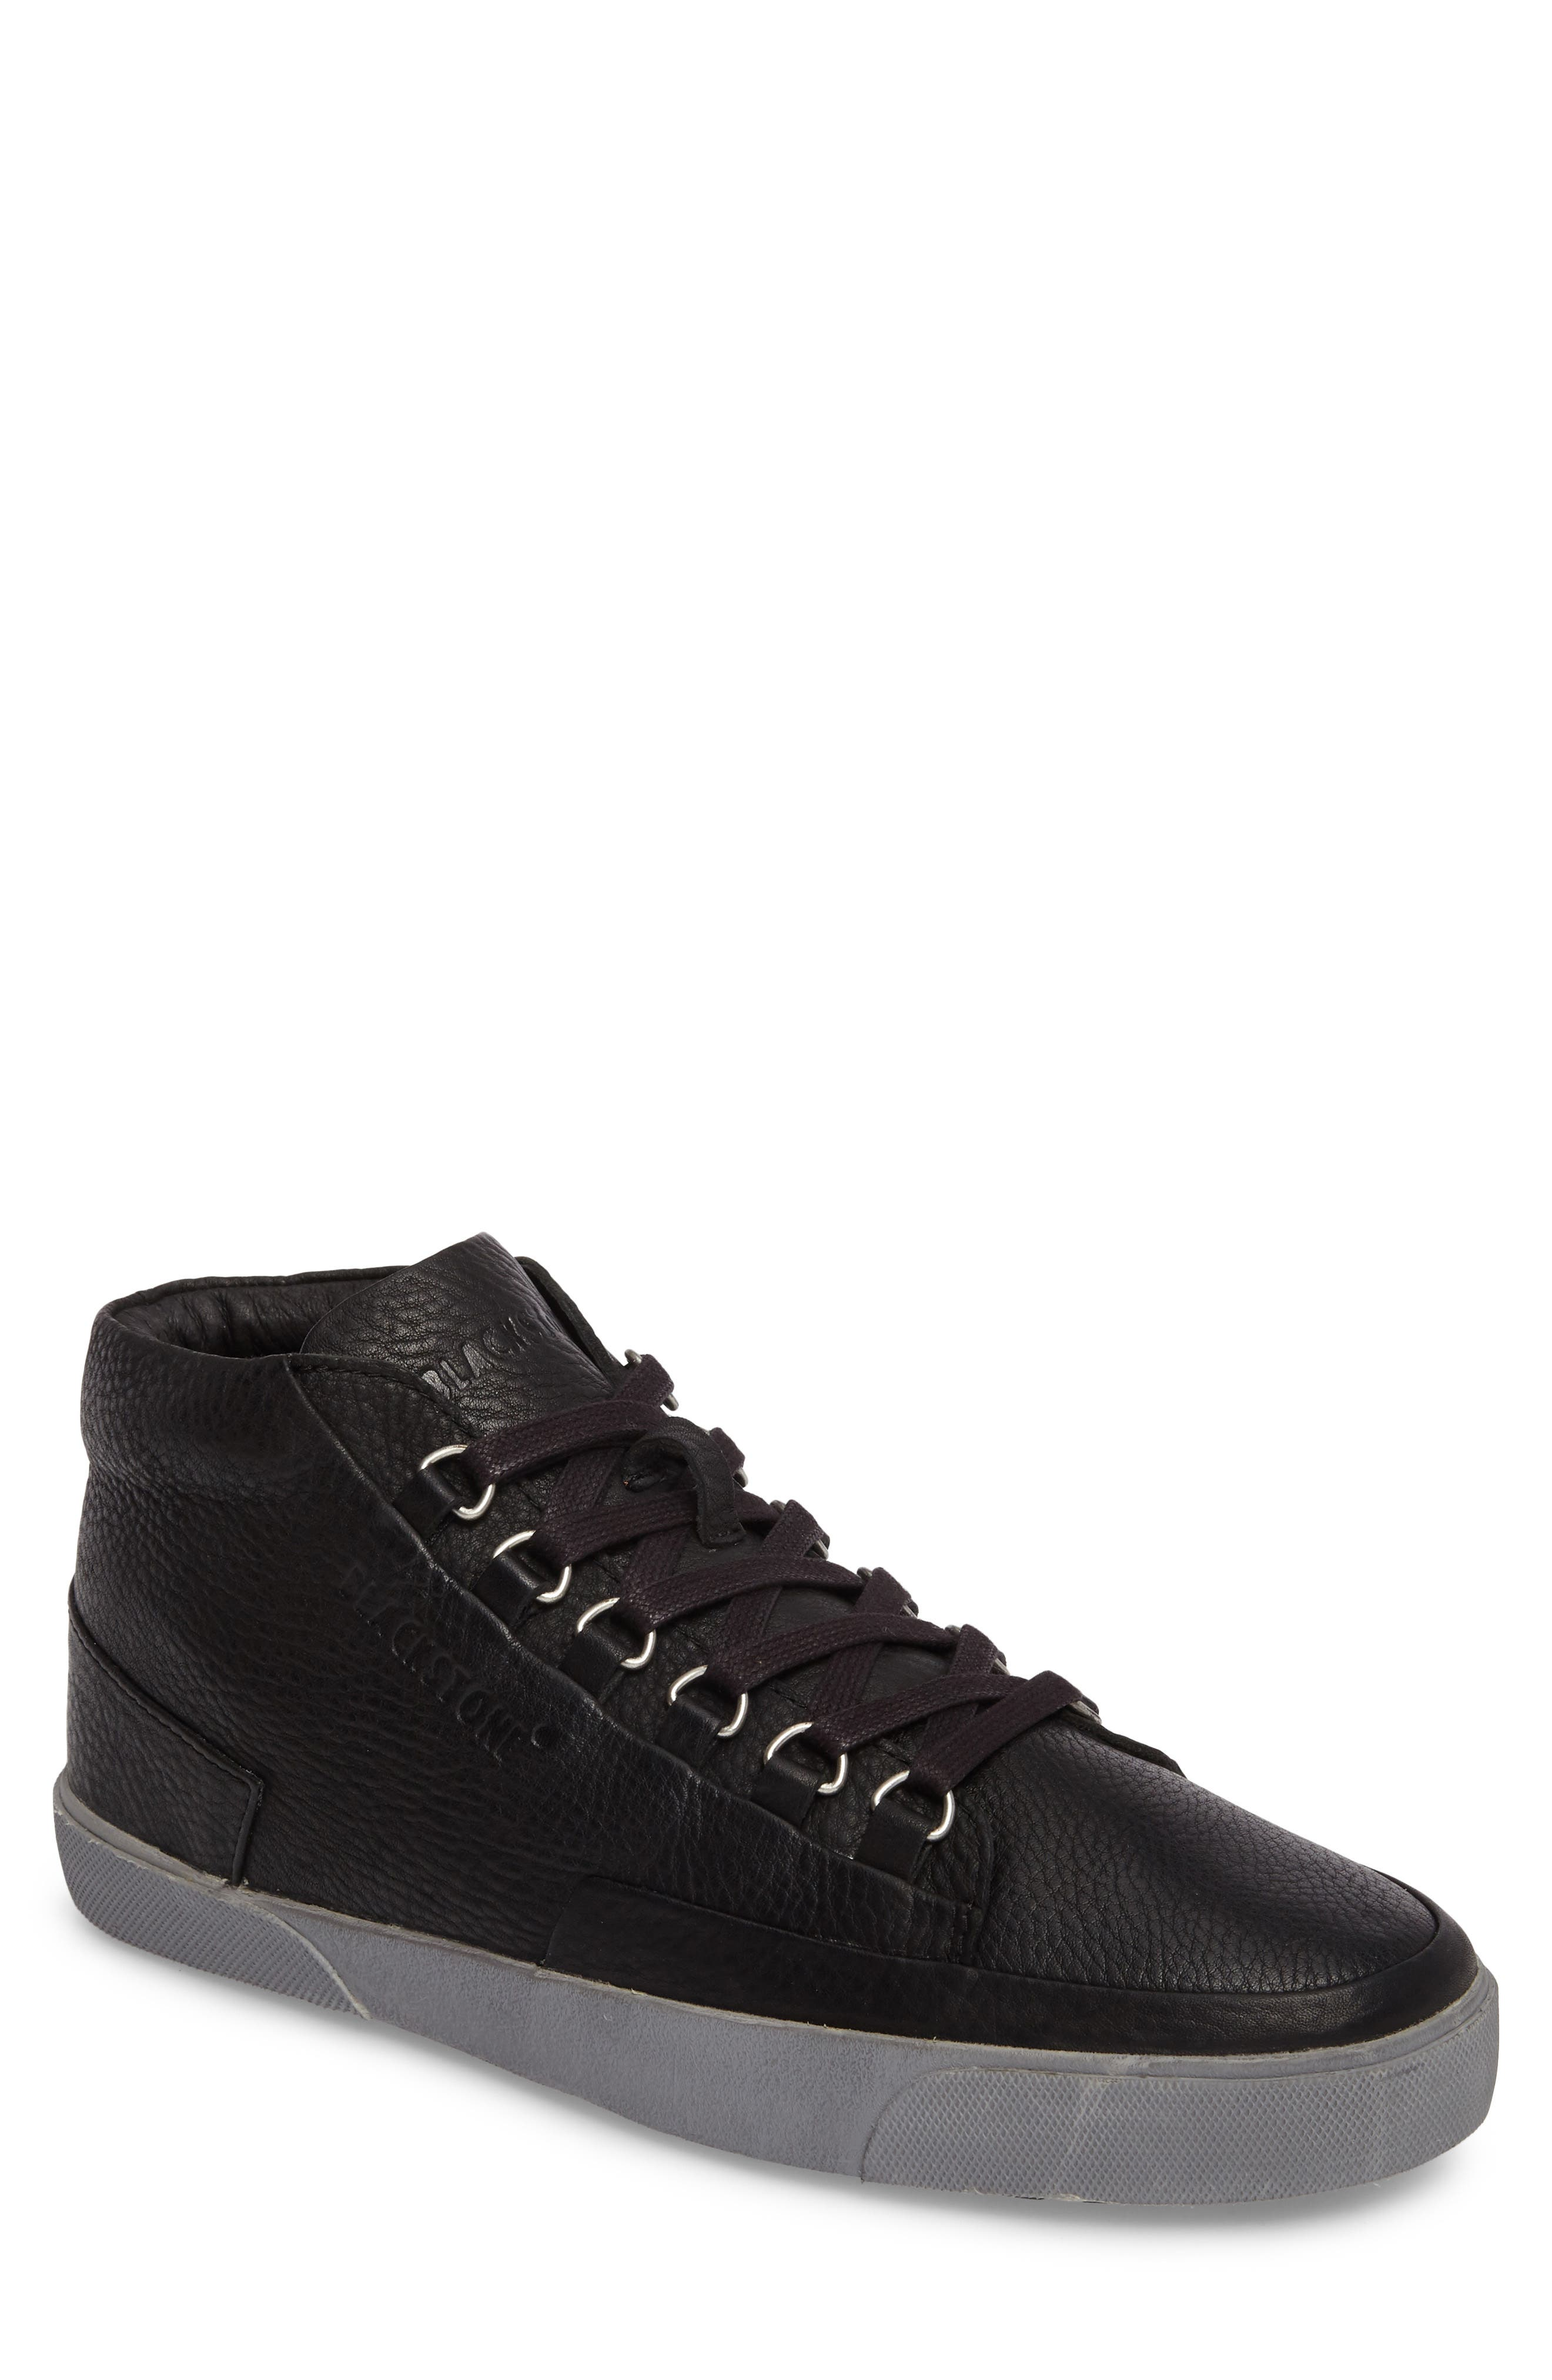 KM 02 Sneaker with Genuine Shearling Lining,                             Main thumbnail 1, color,                             001